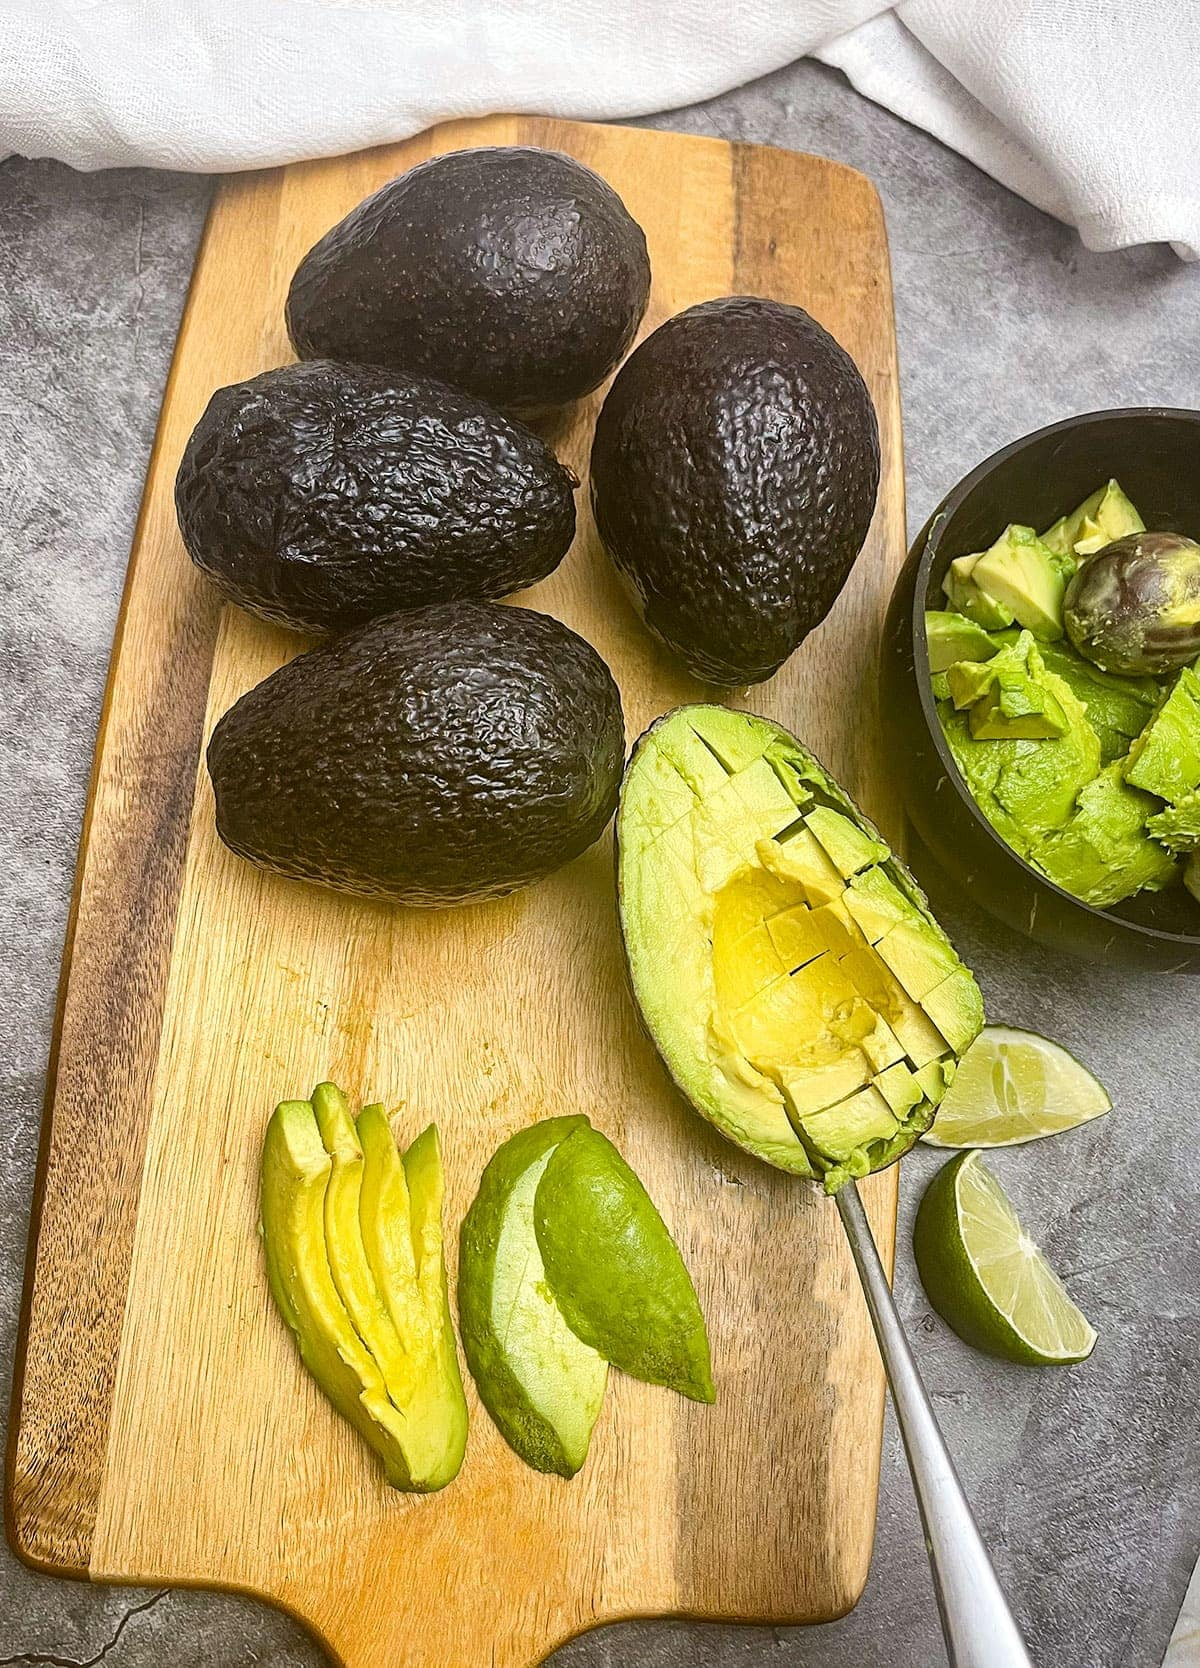 scooping avocado vs slicing on a wooden background